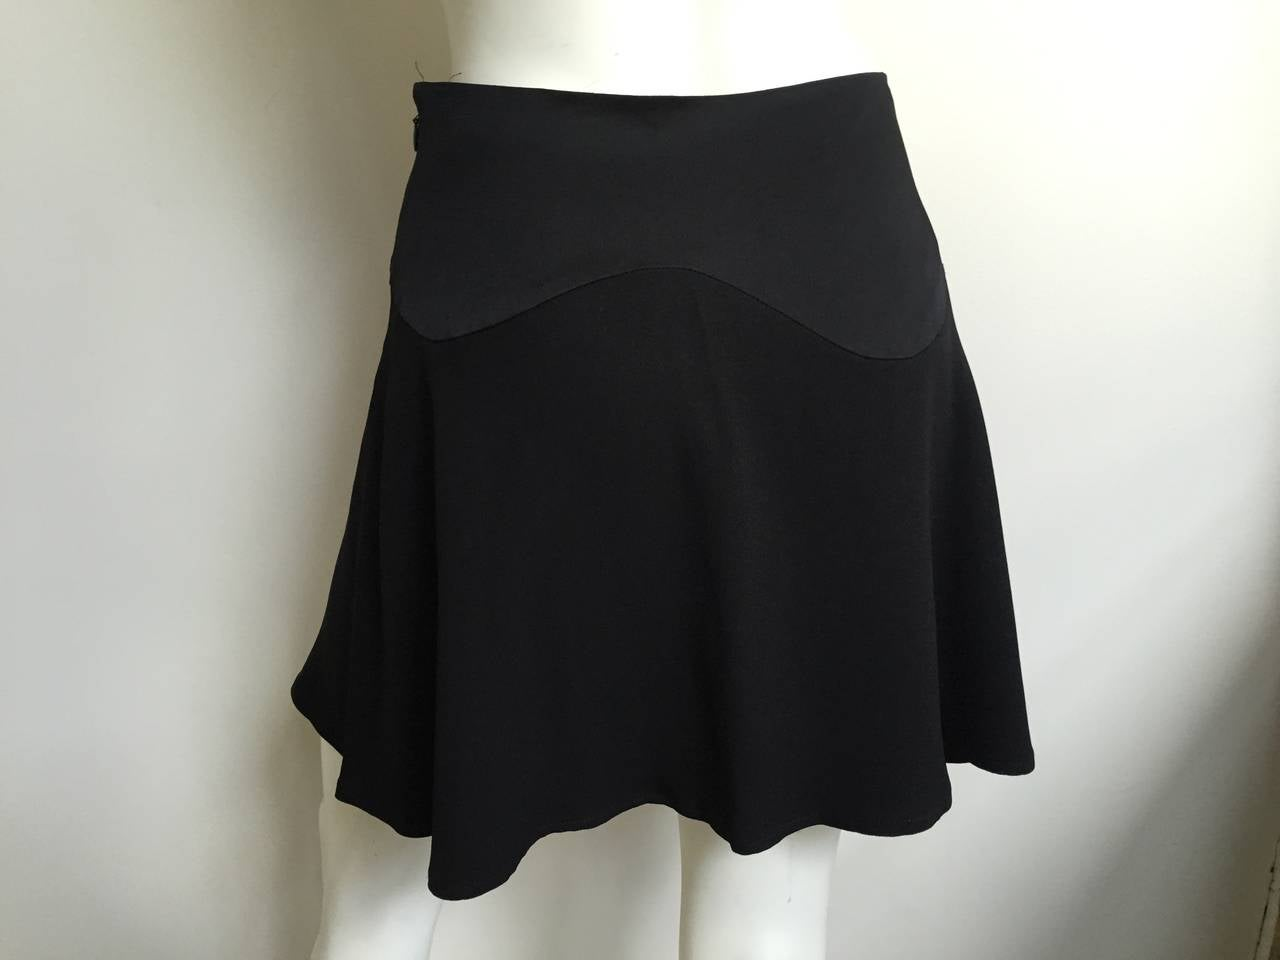 Moschino Cheap and Chic black short sexy skirt size 6. 5